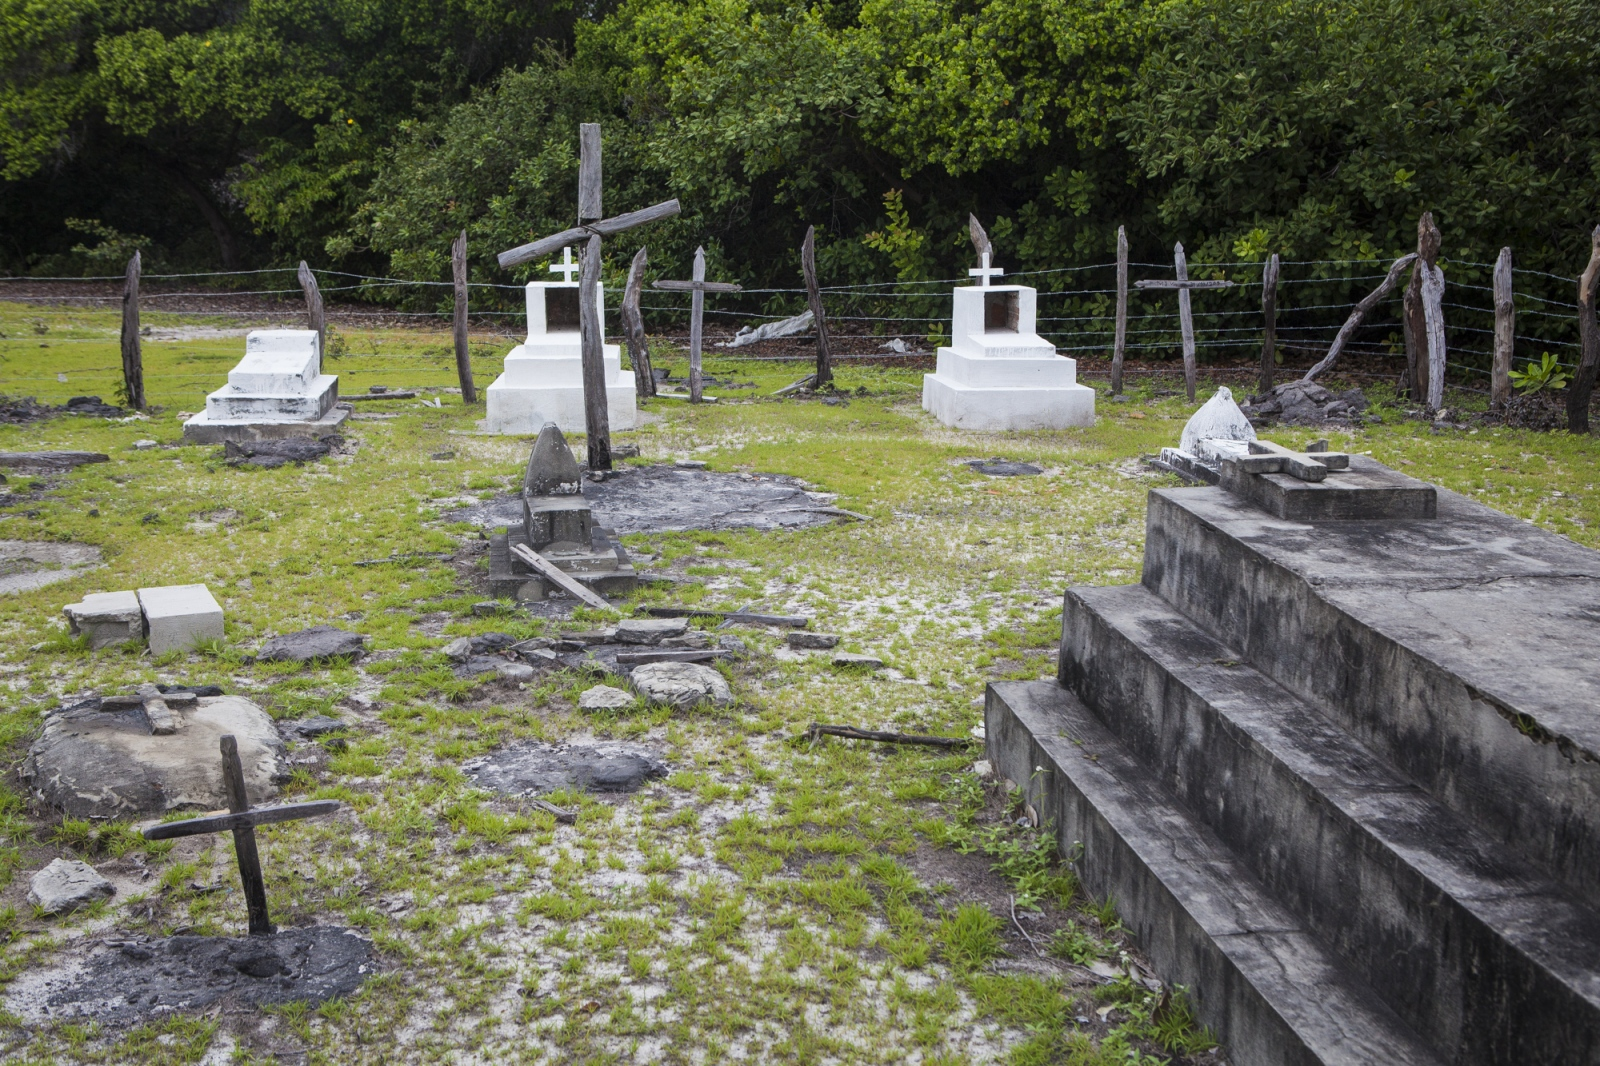 The cemetery of the Queimada dos Britos, where most of old residents are buried.  It is one of the reasons why the locals don't want to leave the oasis. The Brazilian Institute of the Environment and Natural Resources (IBAMA) is planning to remove them since they live in a National Park. The residents refuse to move since many of them were born there and lived all their lives in the Queimada. They claim that more than a threat, they are a protection to the Lençois do Maranhão.